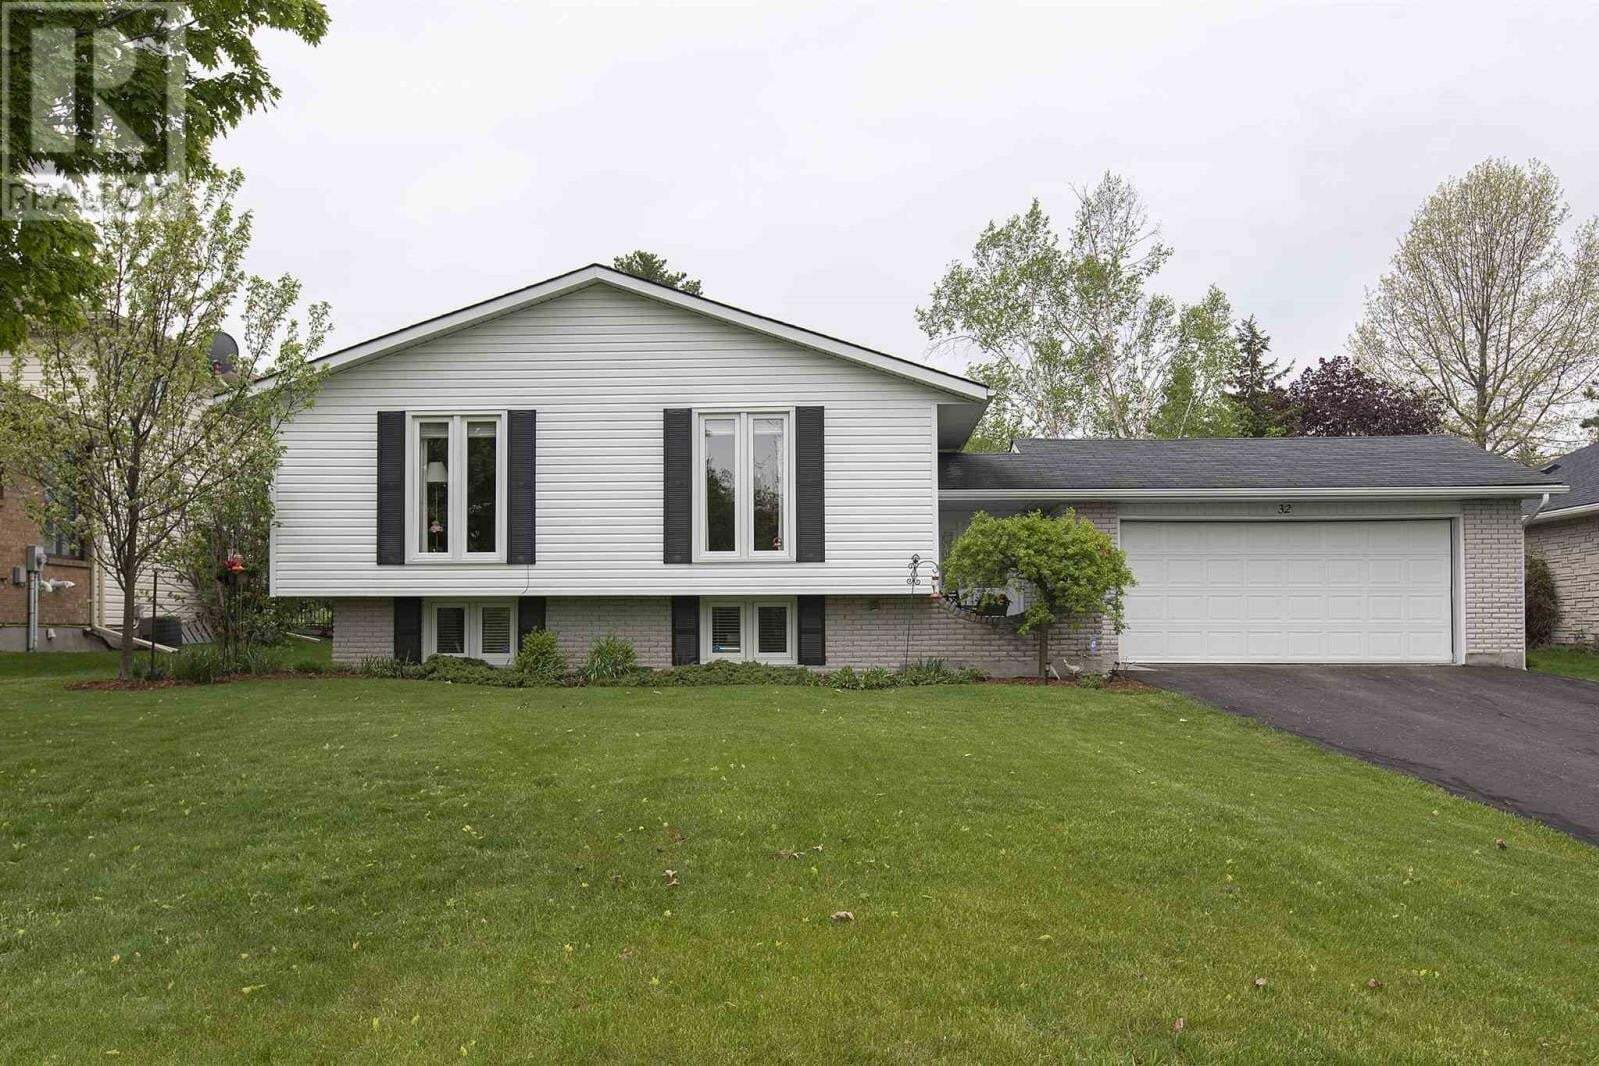 House for sale at 32 Mccabe St Napanee Ontario - MLS: K20002682